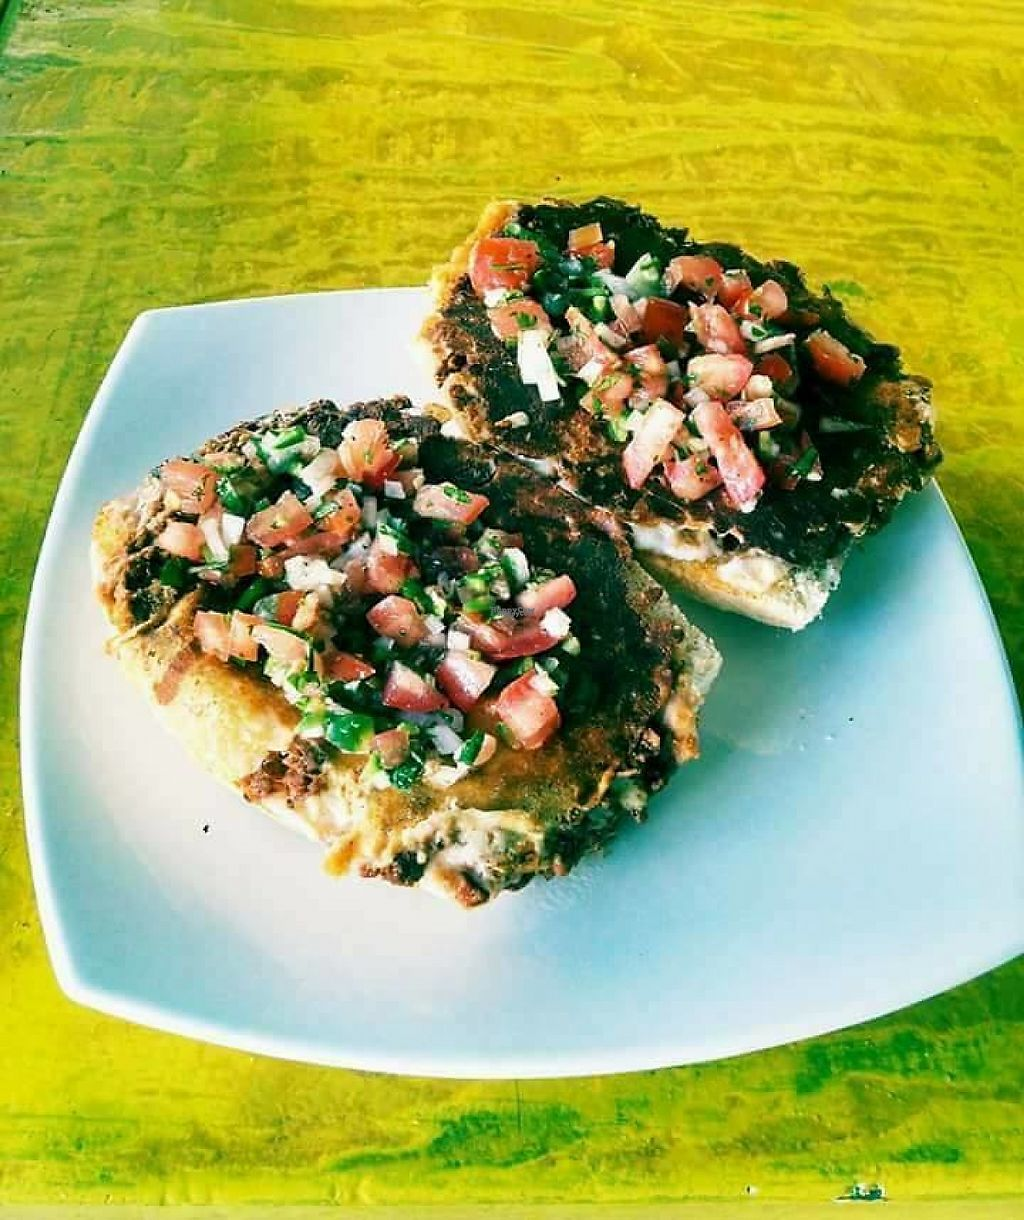 "Photo of Amarillo Limón  by <a href=""/members/profile/community"">community</a> <br/>Muffins with mushrooms accompanied by pico de gallo <br/> December 10, 2016  - <a href='/contact/abuse/image/83841/199168'>Report</a>"